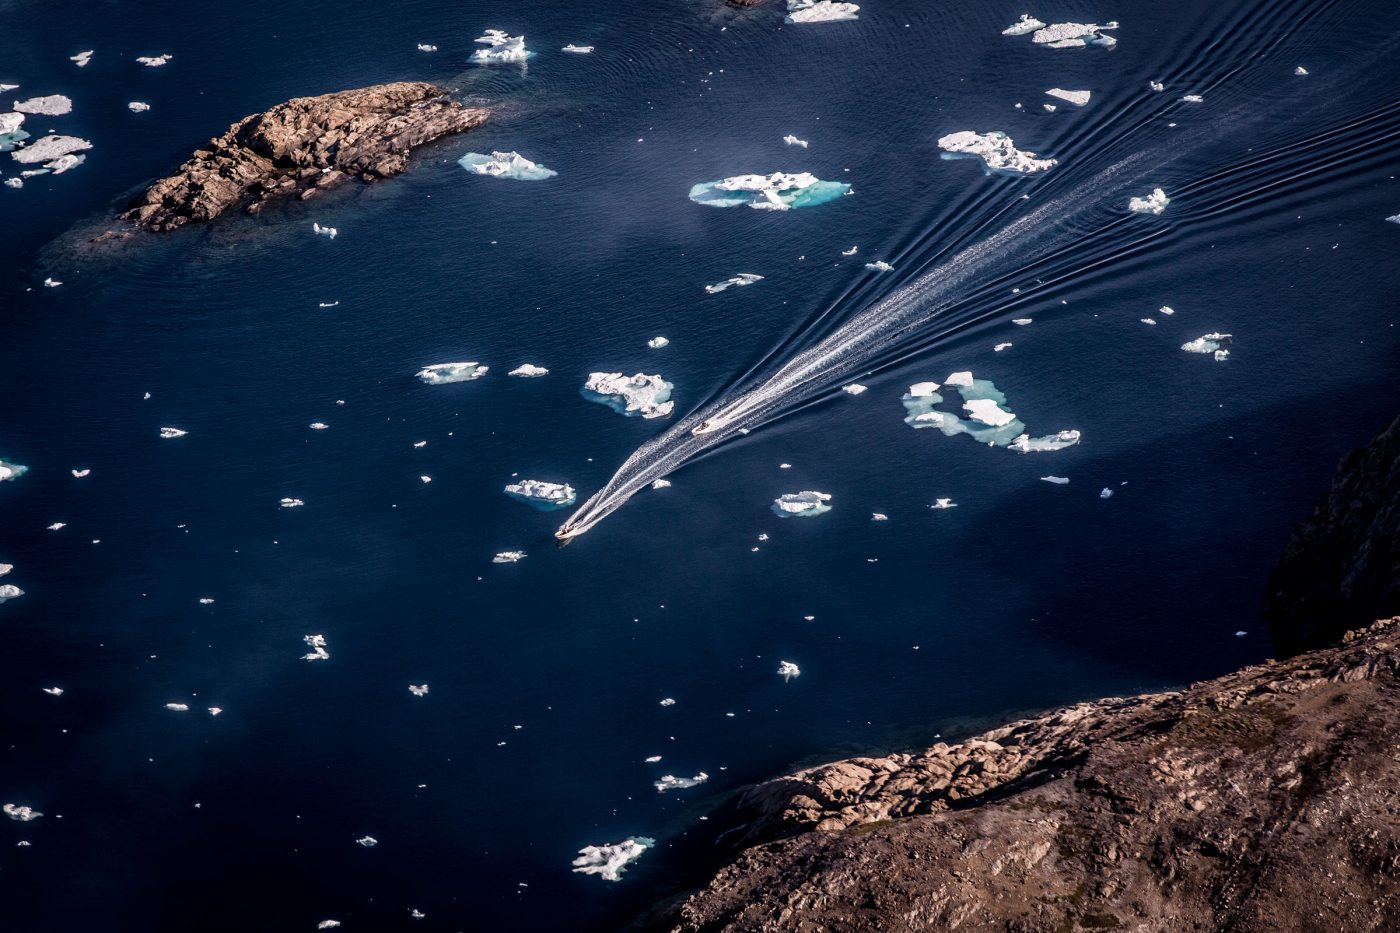 Boats seen from a flight perspective. Photo by Mads Pihl